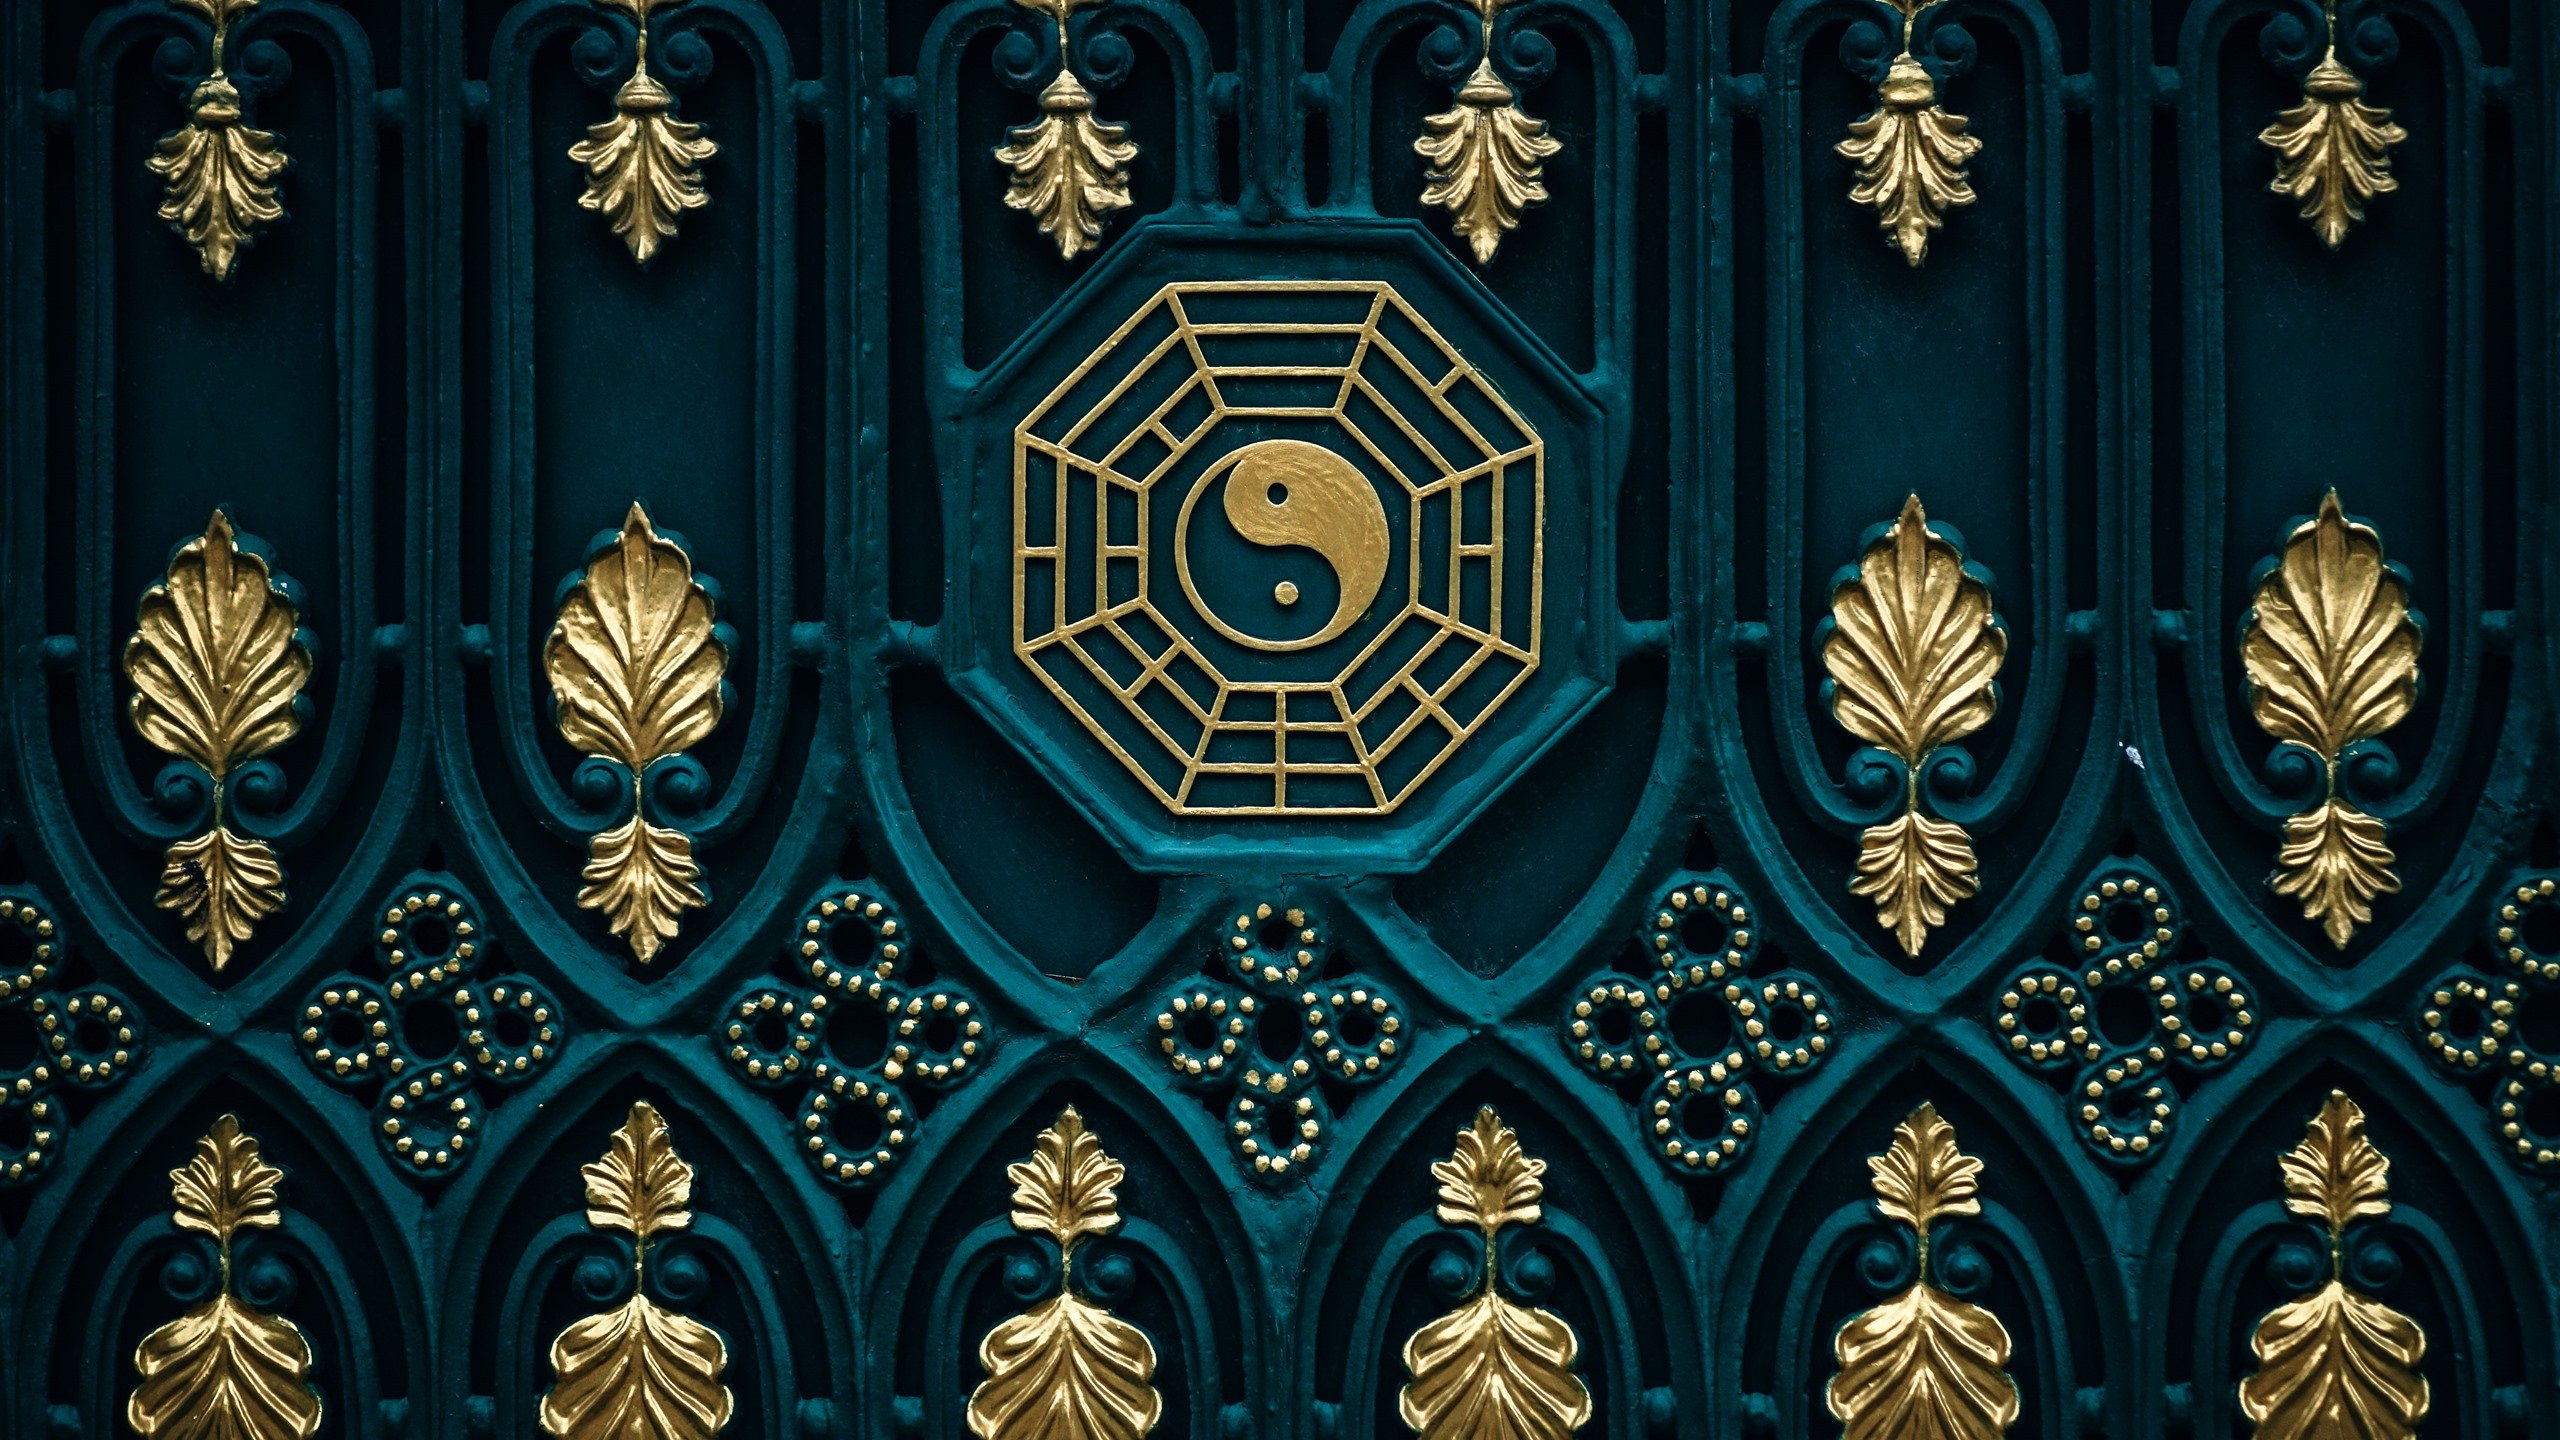 Wallpaper Bagua map yin yang door 5120x2880 UHD 5K Picture Image 2560x1440